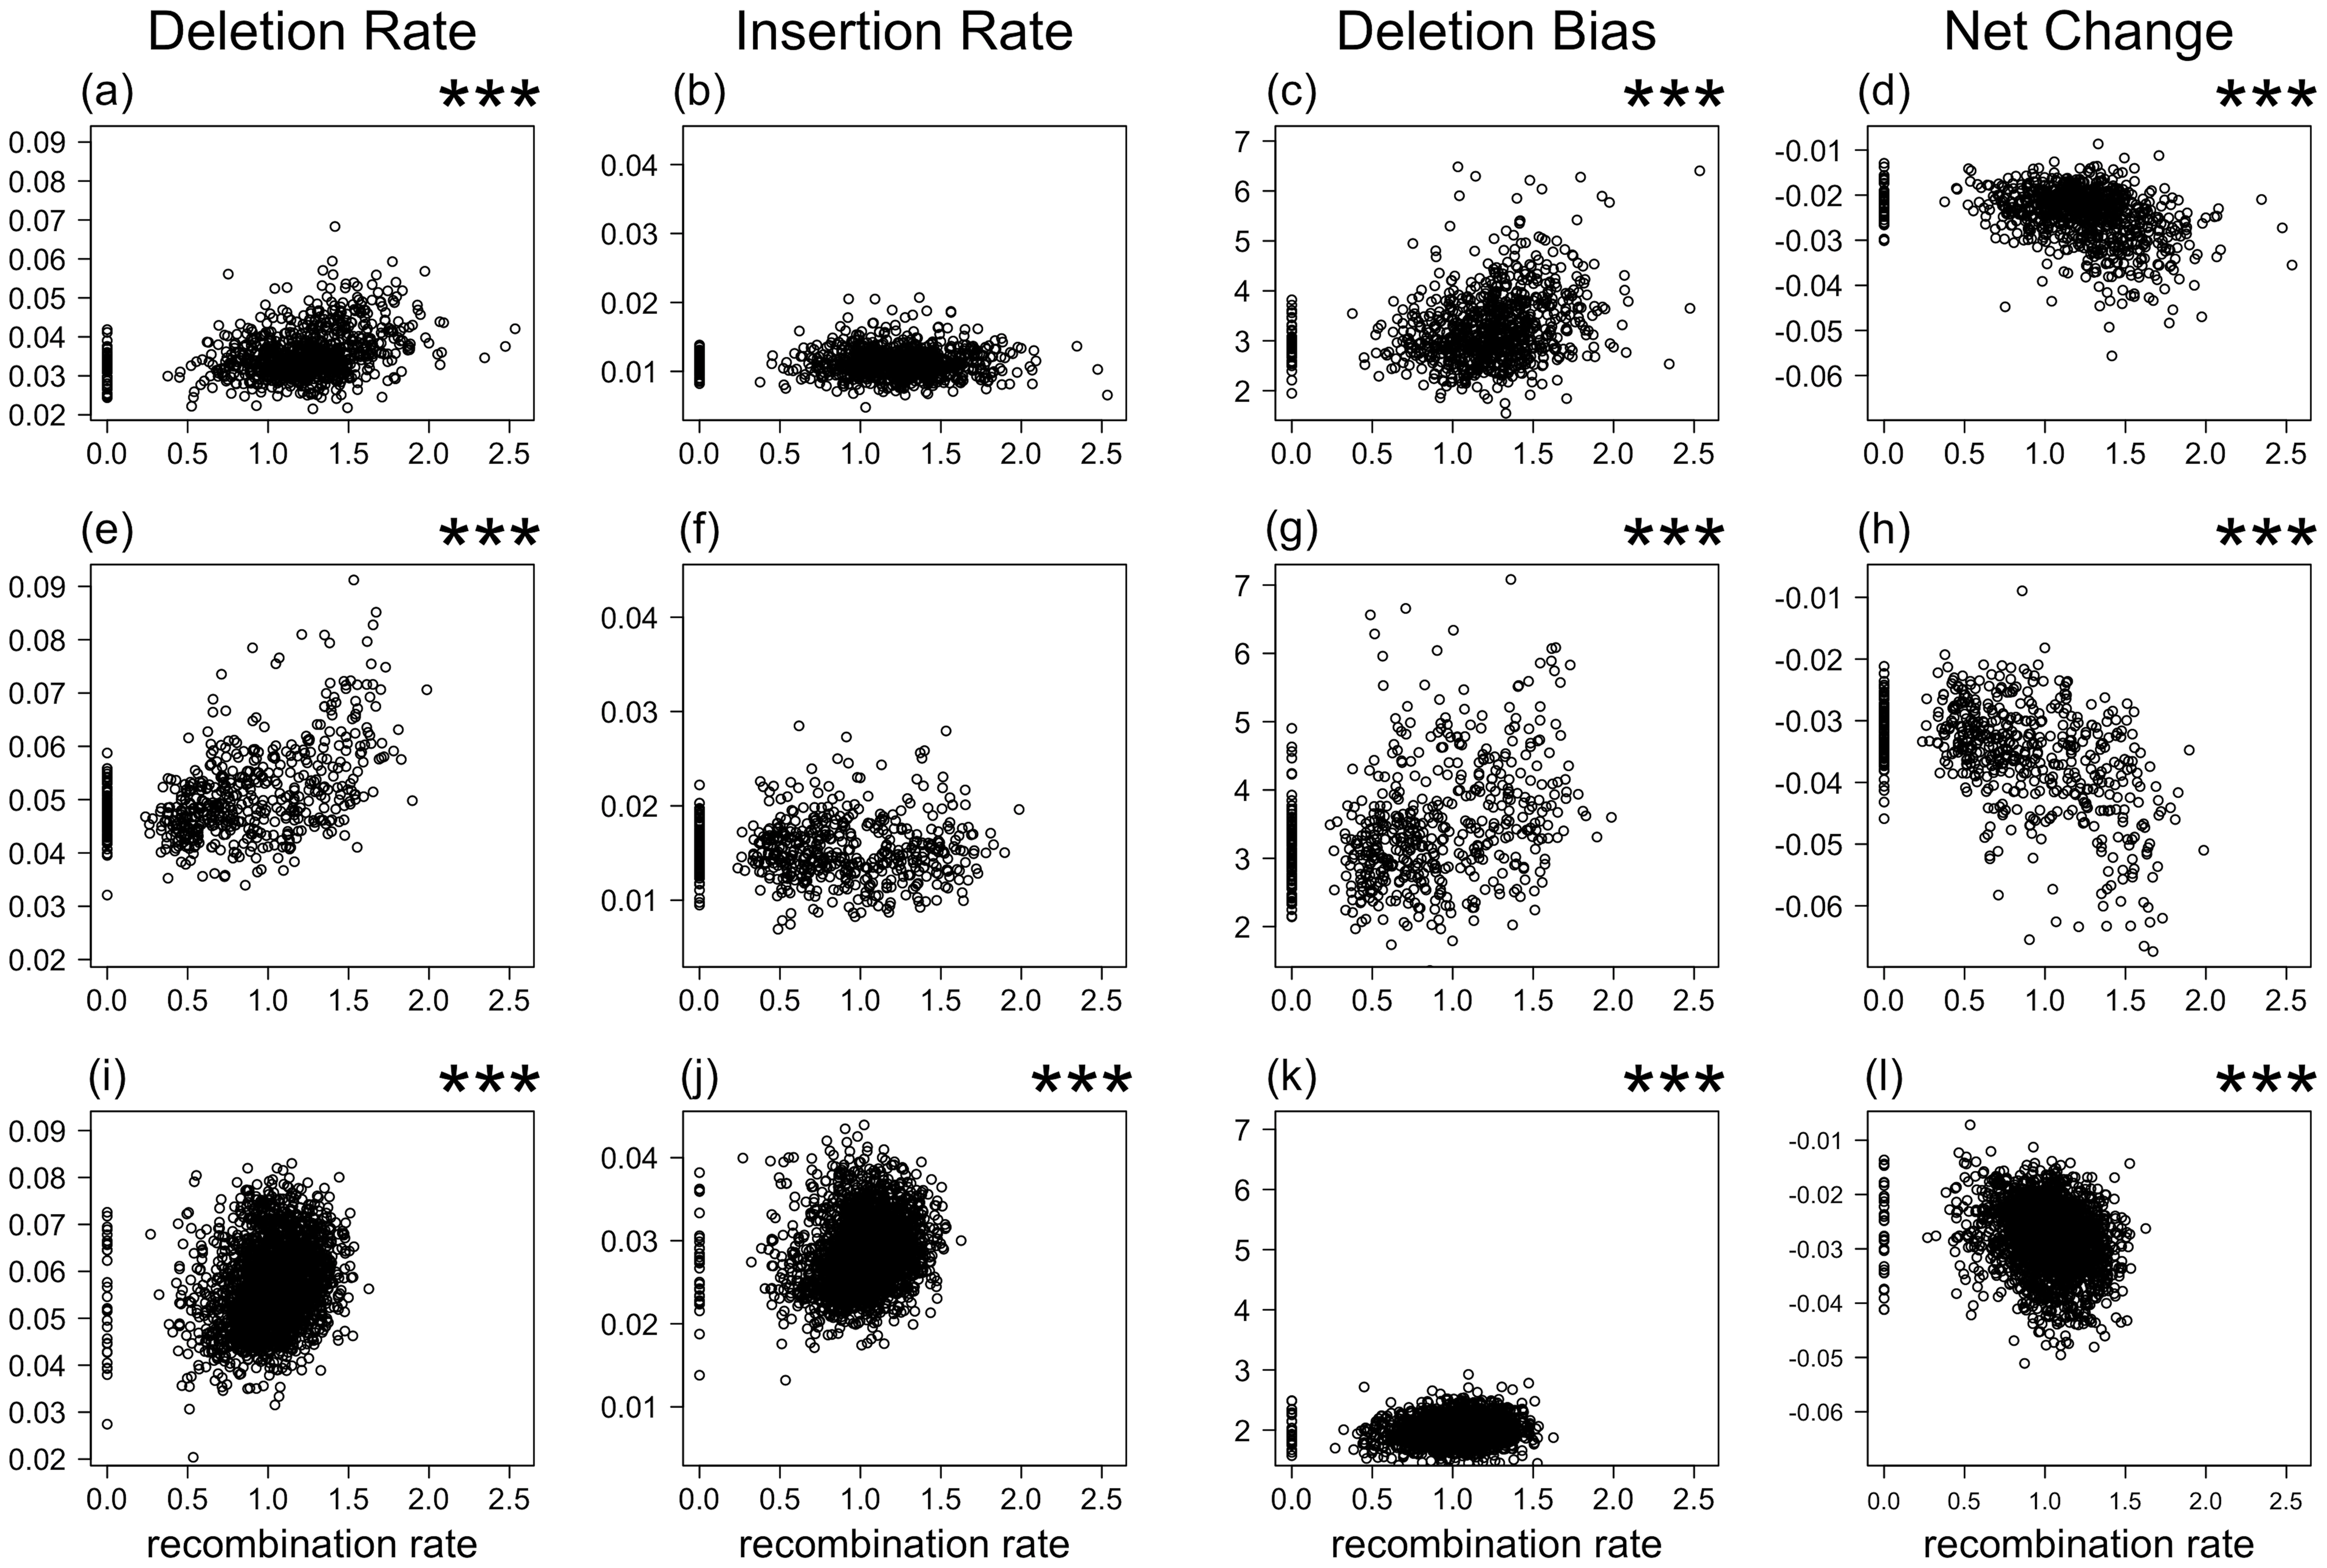 The relationship between recombination rate (x-axis, fourth-root) and deletion rate, insertion rate, deletion bias (deletion rate/insertion rate), and rate of net sequence length change (insertion rate – deletion rate).